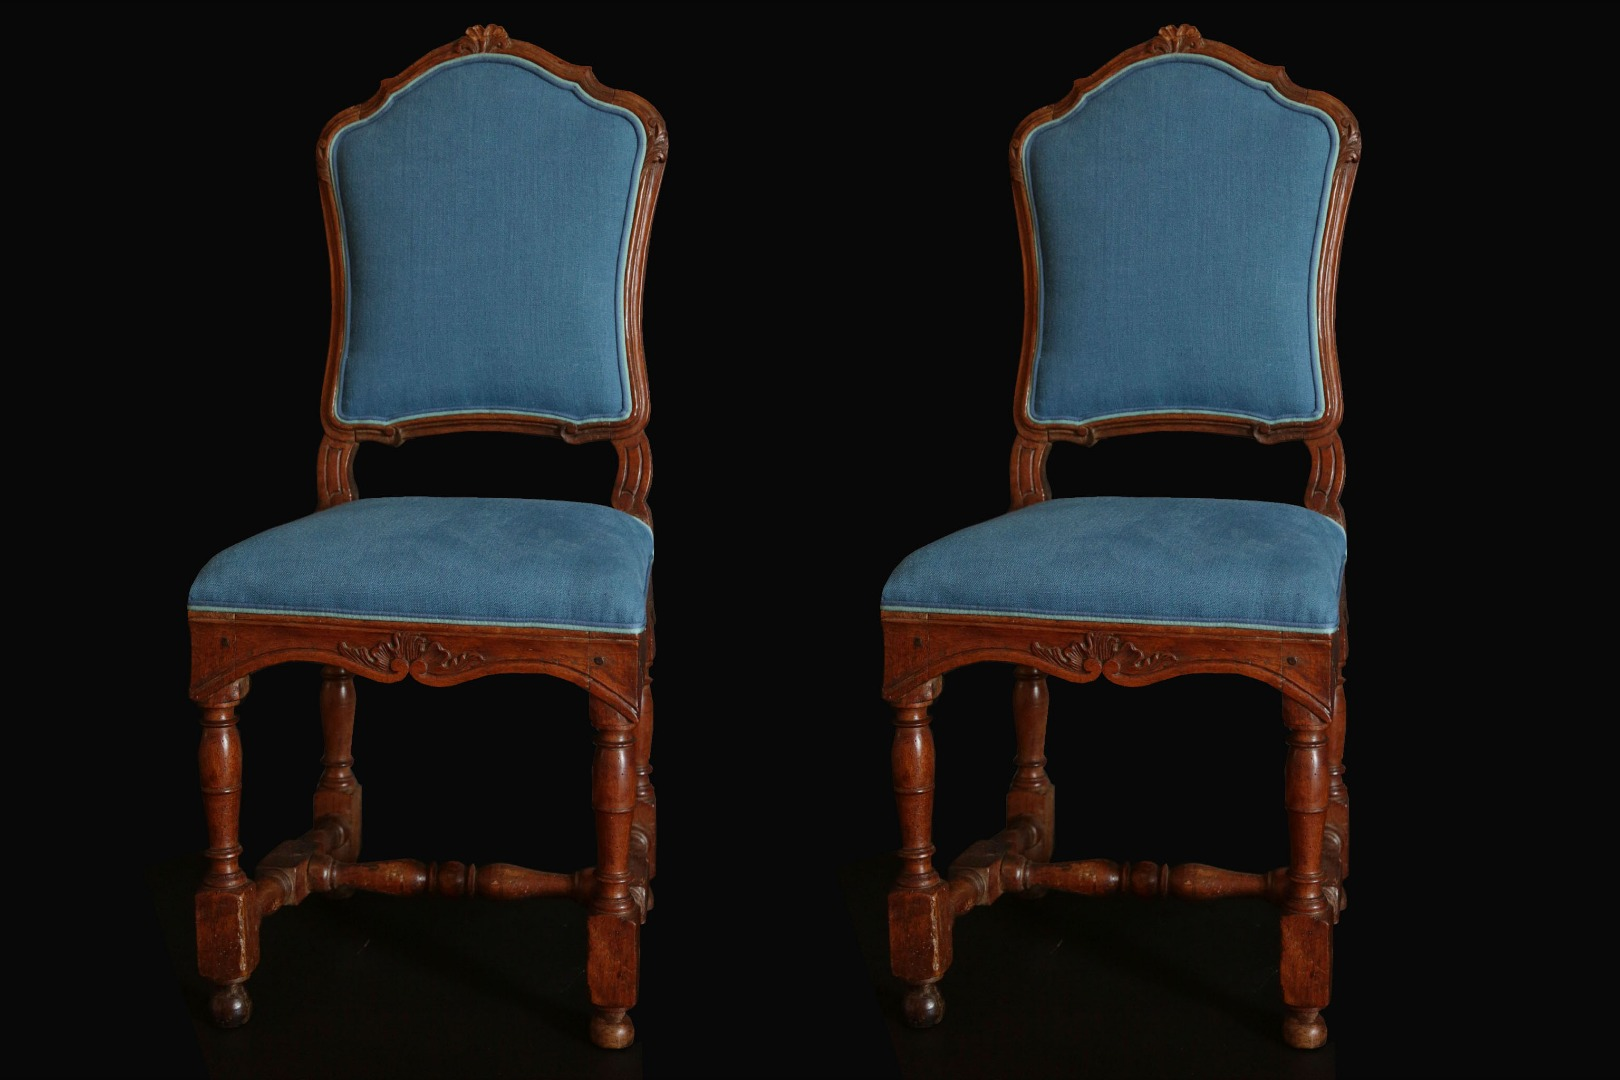 Pair of Regency chair, 18th century